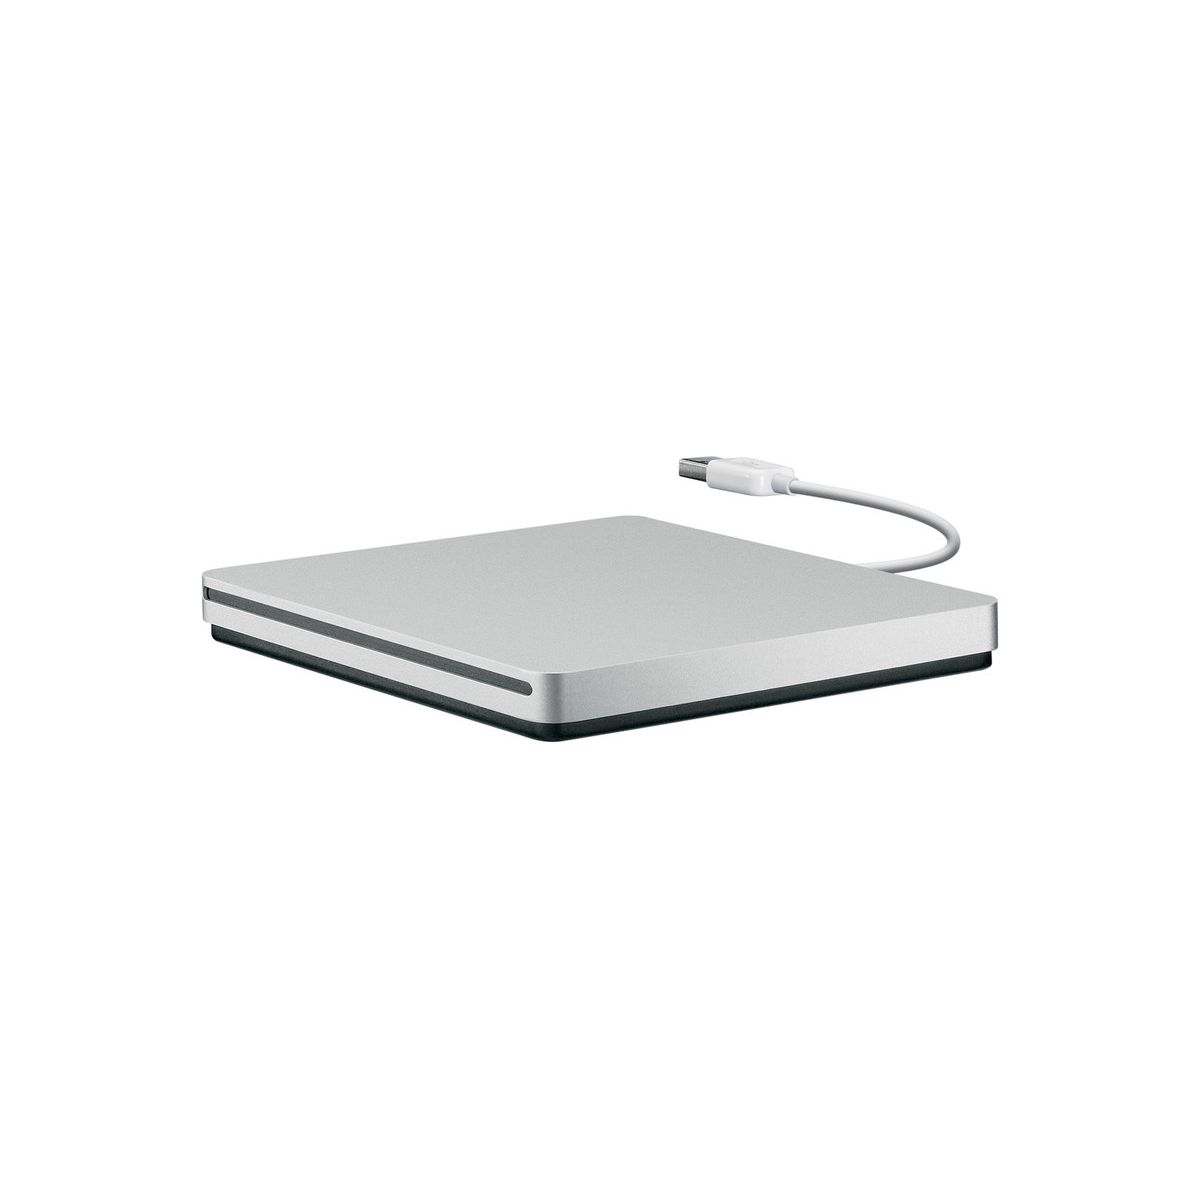 Graveur APPLE SuperDriveUSB